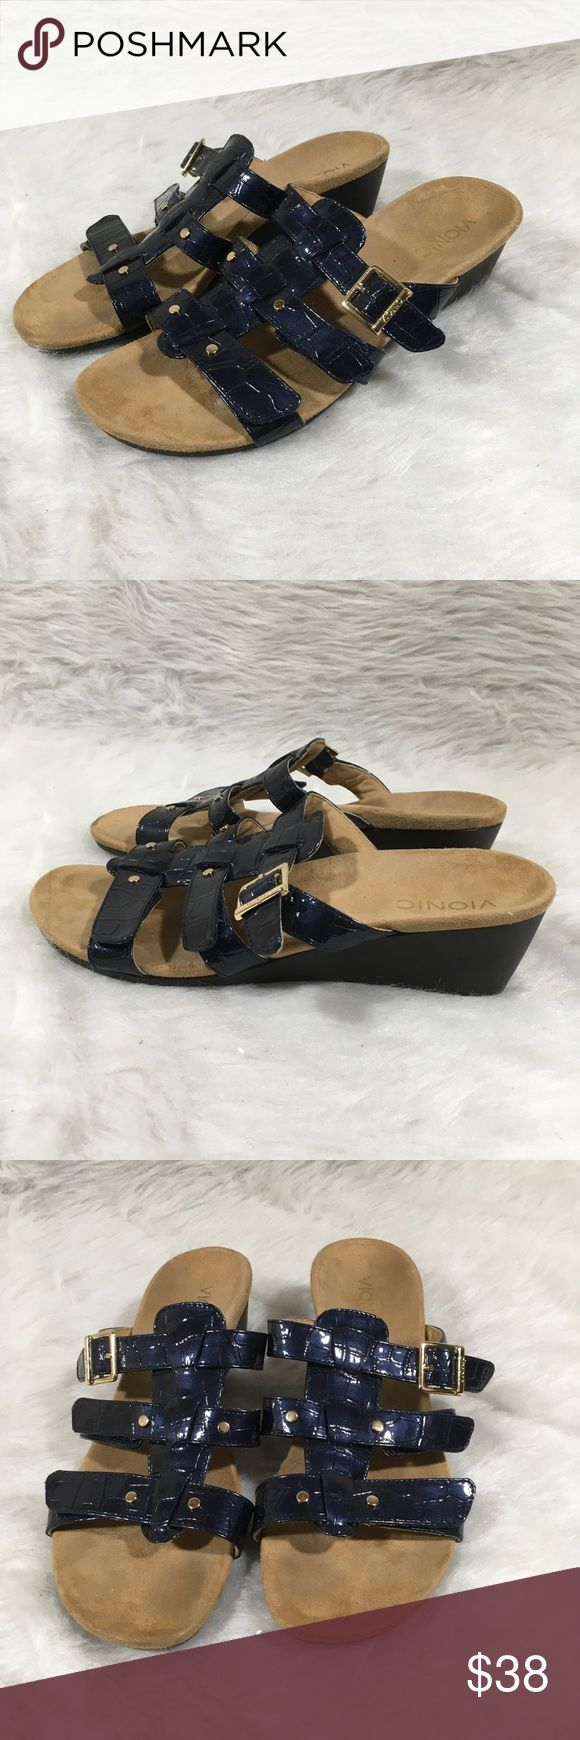 Vionic ParkRadia Blue Crocodile Wedge Sandals Sz 9 Vionic By Orthaheel Park Radia Blue Crocodile Wedge Sandals Alides Sz 9 Gold  Size- 9  Condition-Near mint condition. There is some peeling on wedge, see pictures. Vionic Shoes Sandals